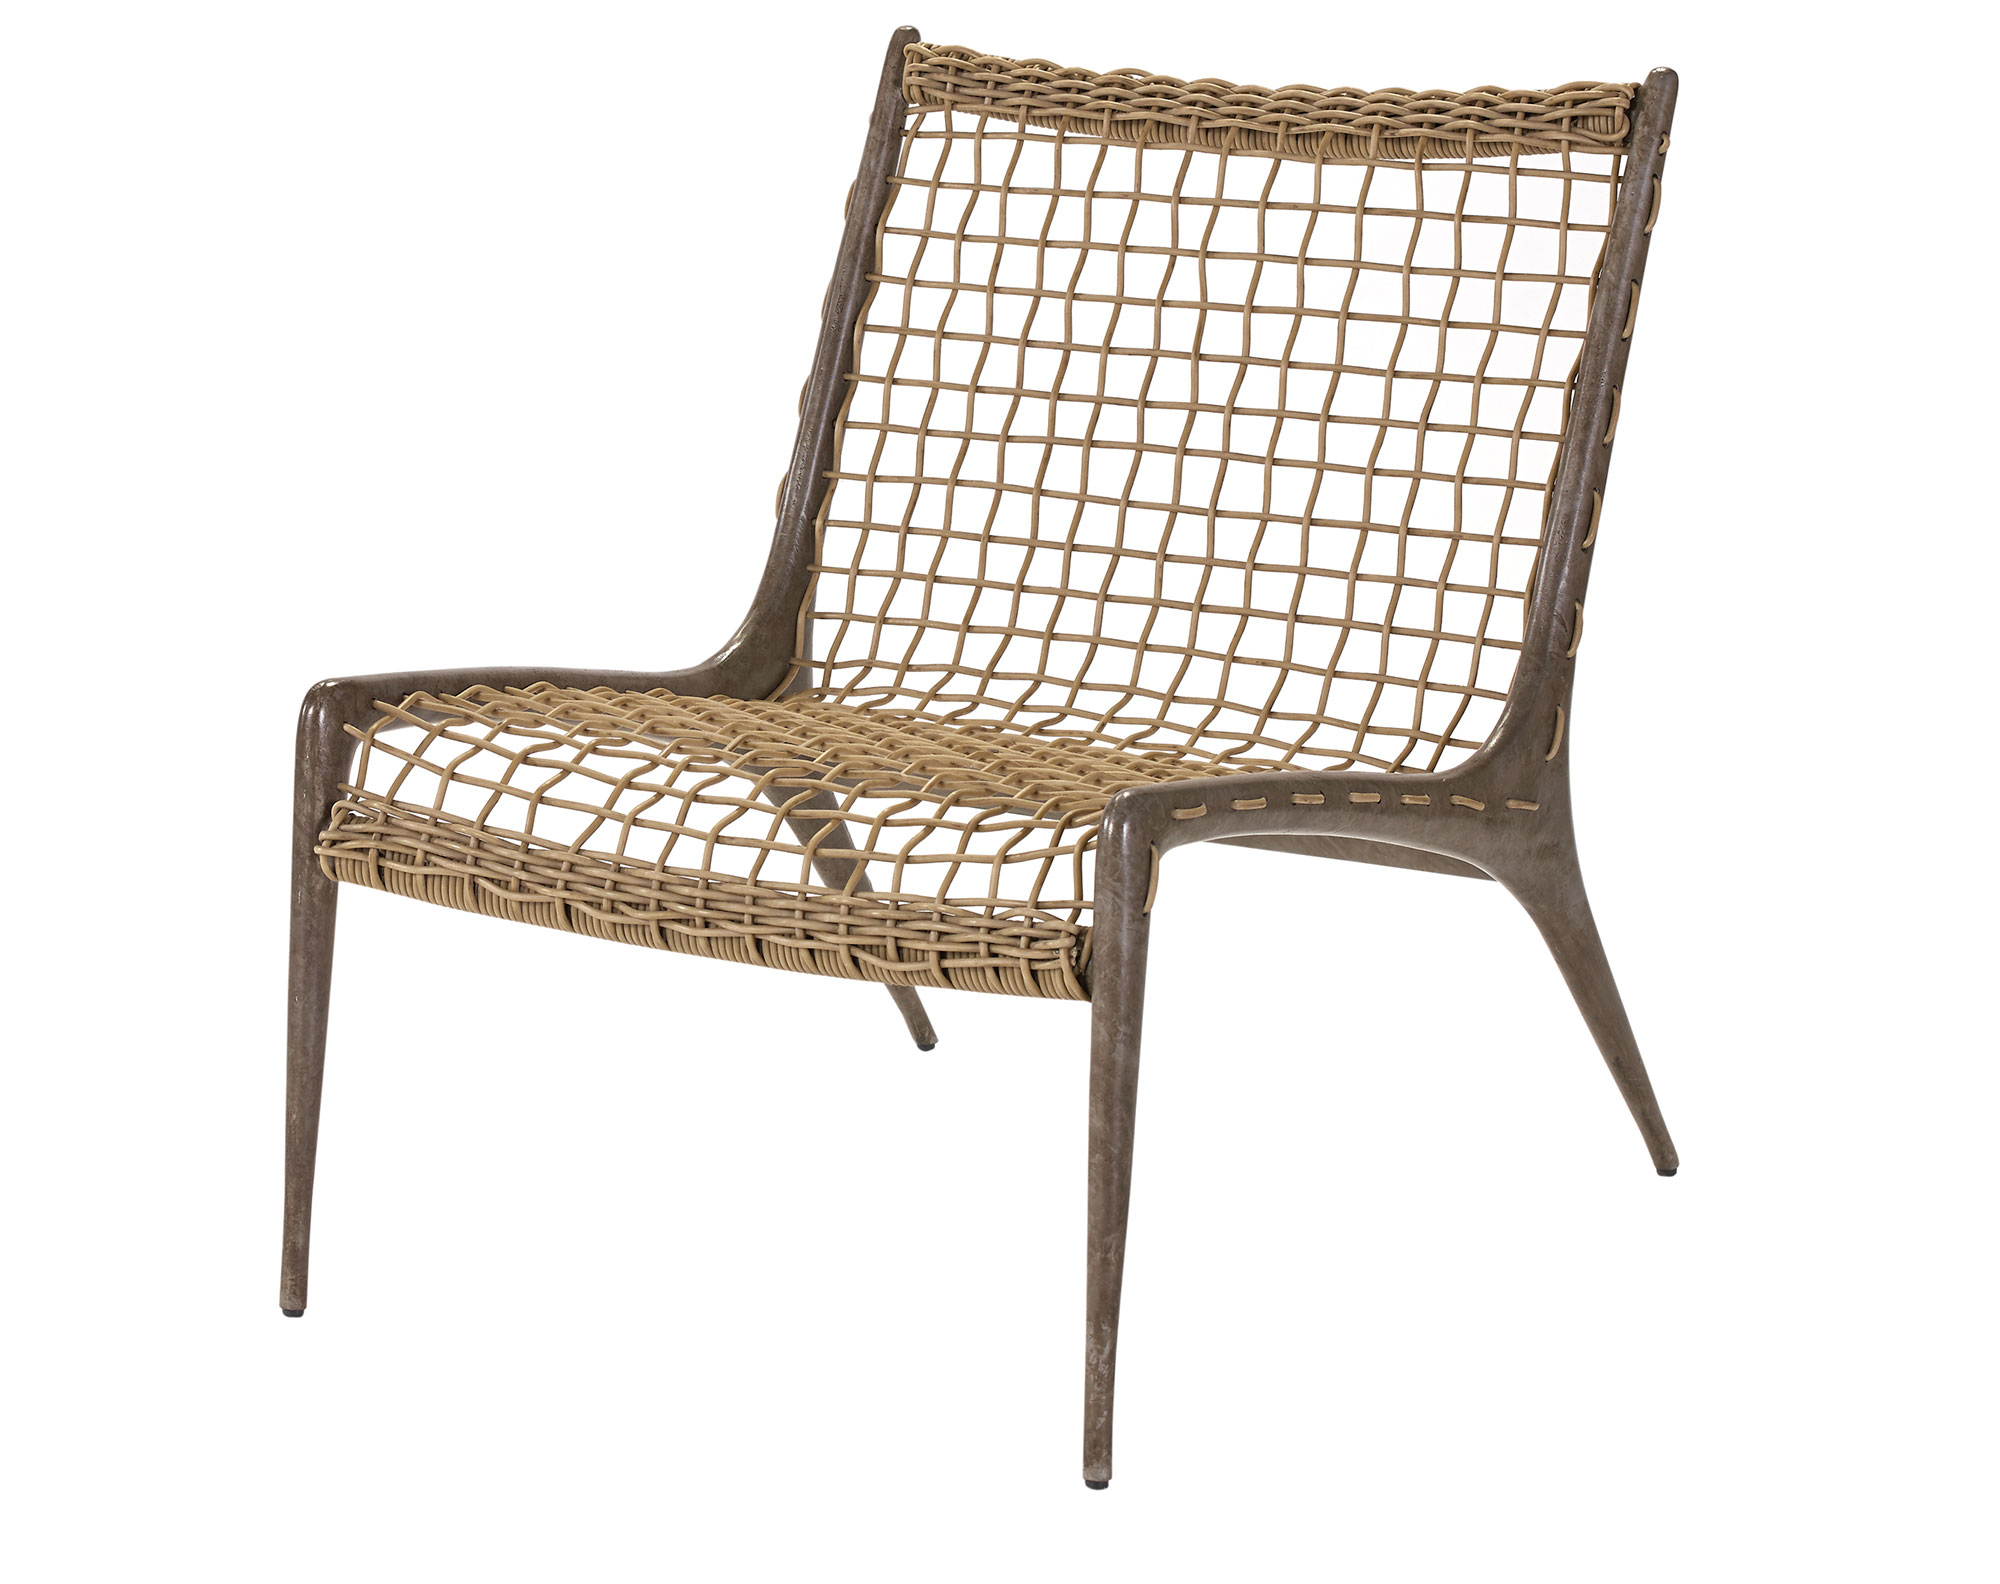 Magnificent Hemingway Chesterfield Lounge Chair 5511 01 Sofas And Machost Co Dining Chair Design Ideas Machostcouk